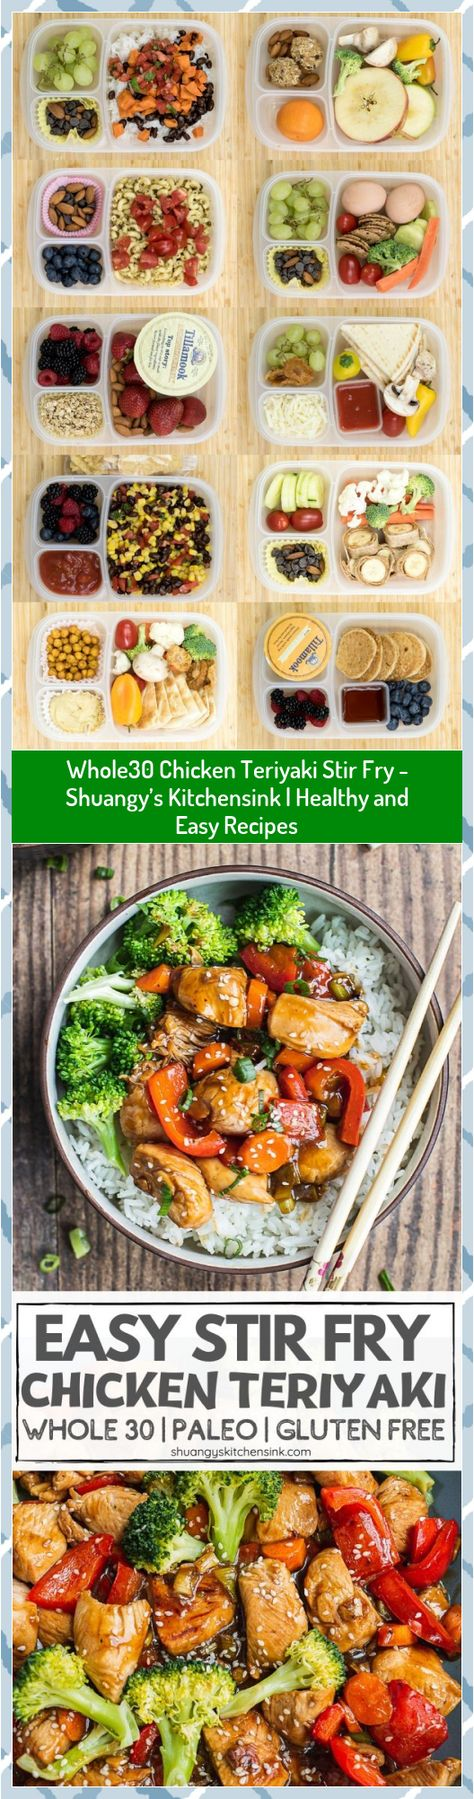 Whole30 Chicken Teriyaki Stir Fry - Shuangy's Kitchensink | Healthy and Easy Recipes #Chicken #Easy #Fry #Healthy #Kitchensink #Recipes #Shuangys #Stir #Teriyaki #Whole30